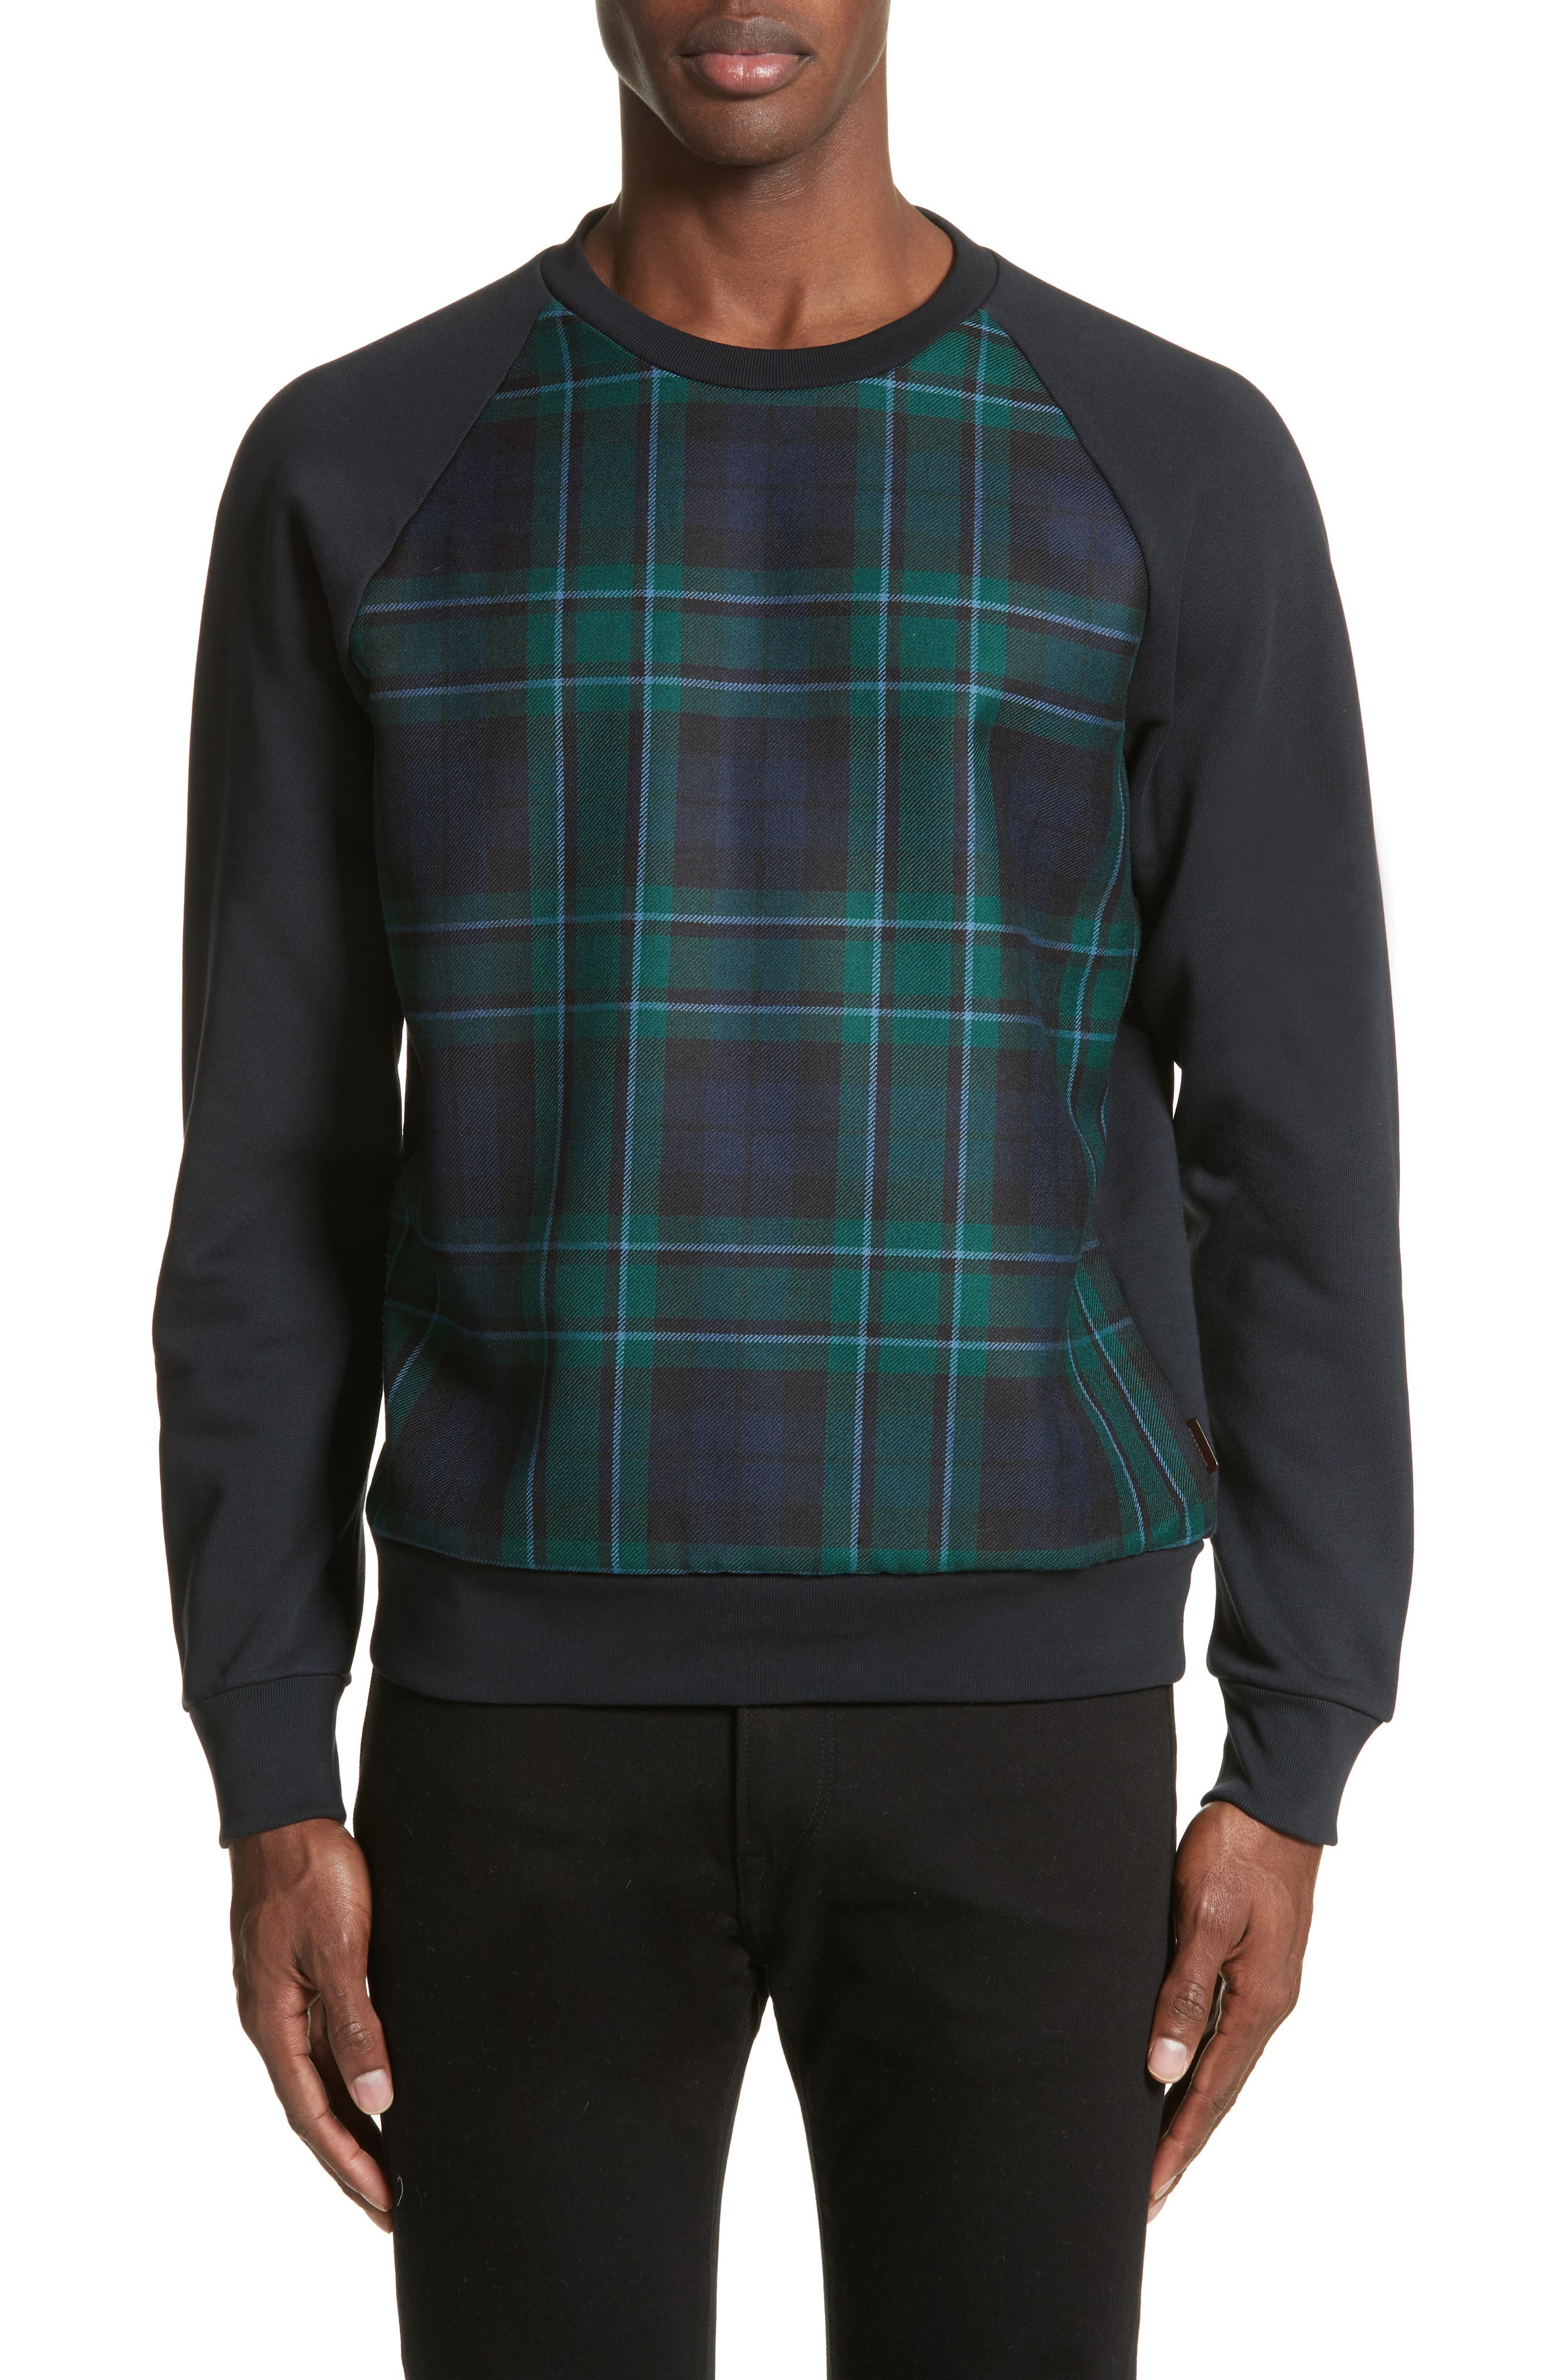 Burberry Beachen Tartan Panel Jersey Sweatshirt